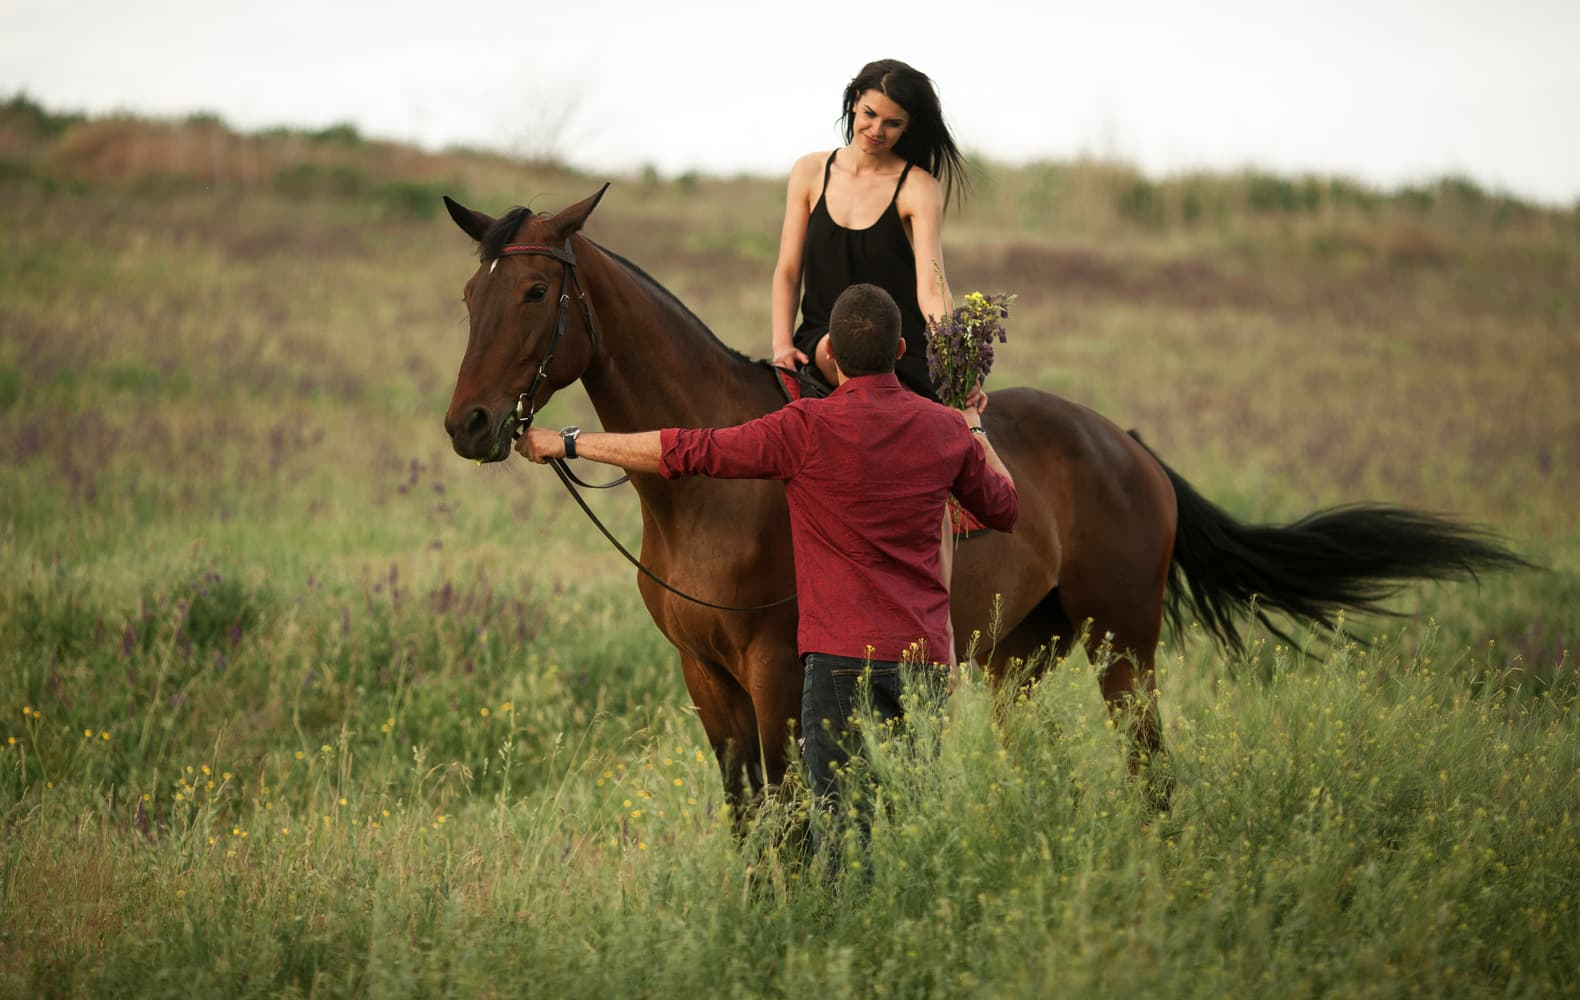 A man gives a bouquet of wildflowers to his partner on a horse